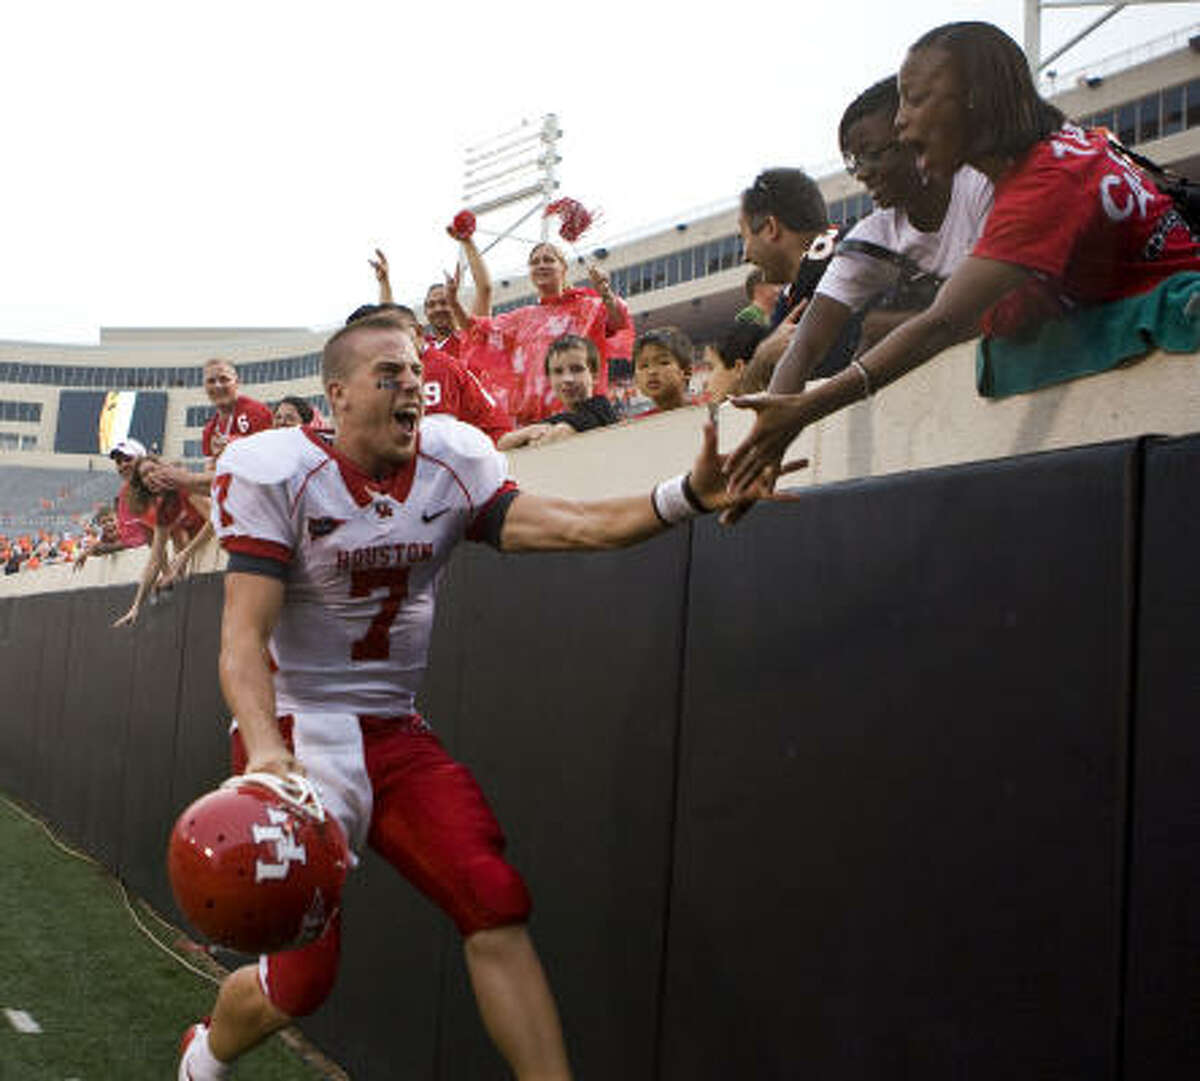 Houston quarterback Case Keenum clebrates with Houston fans after the victory.